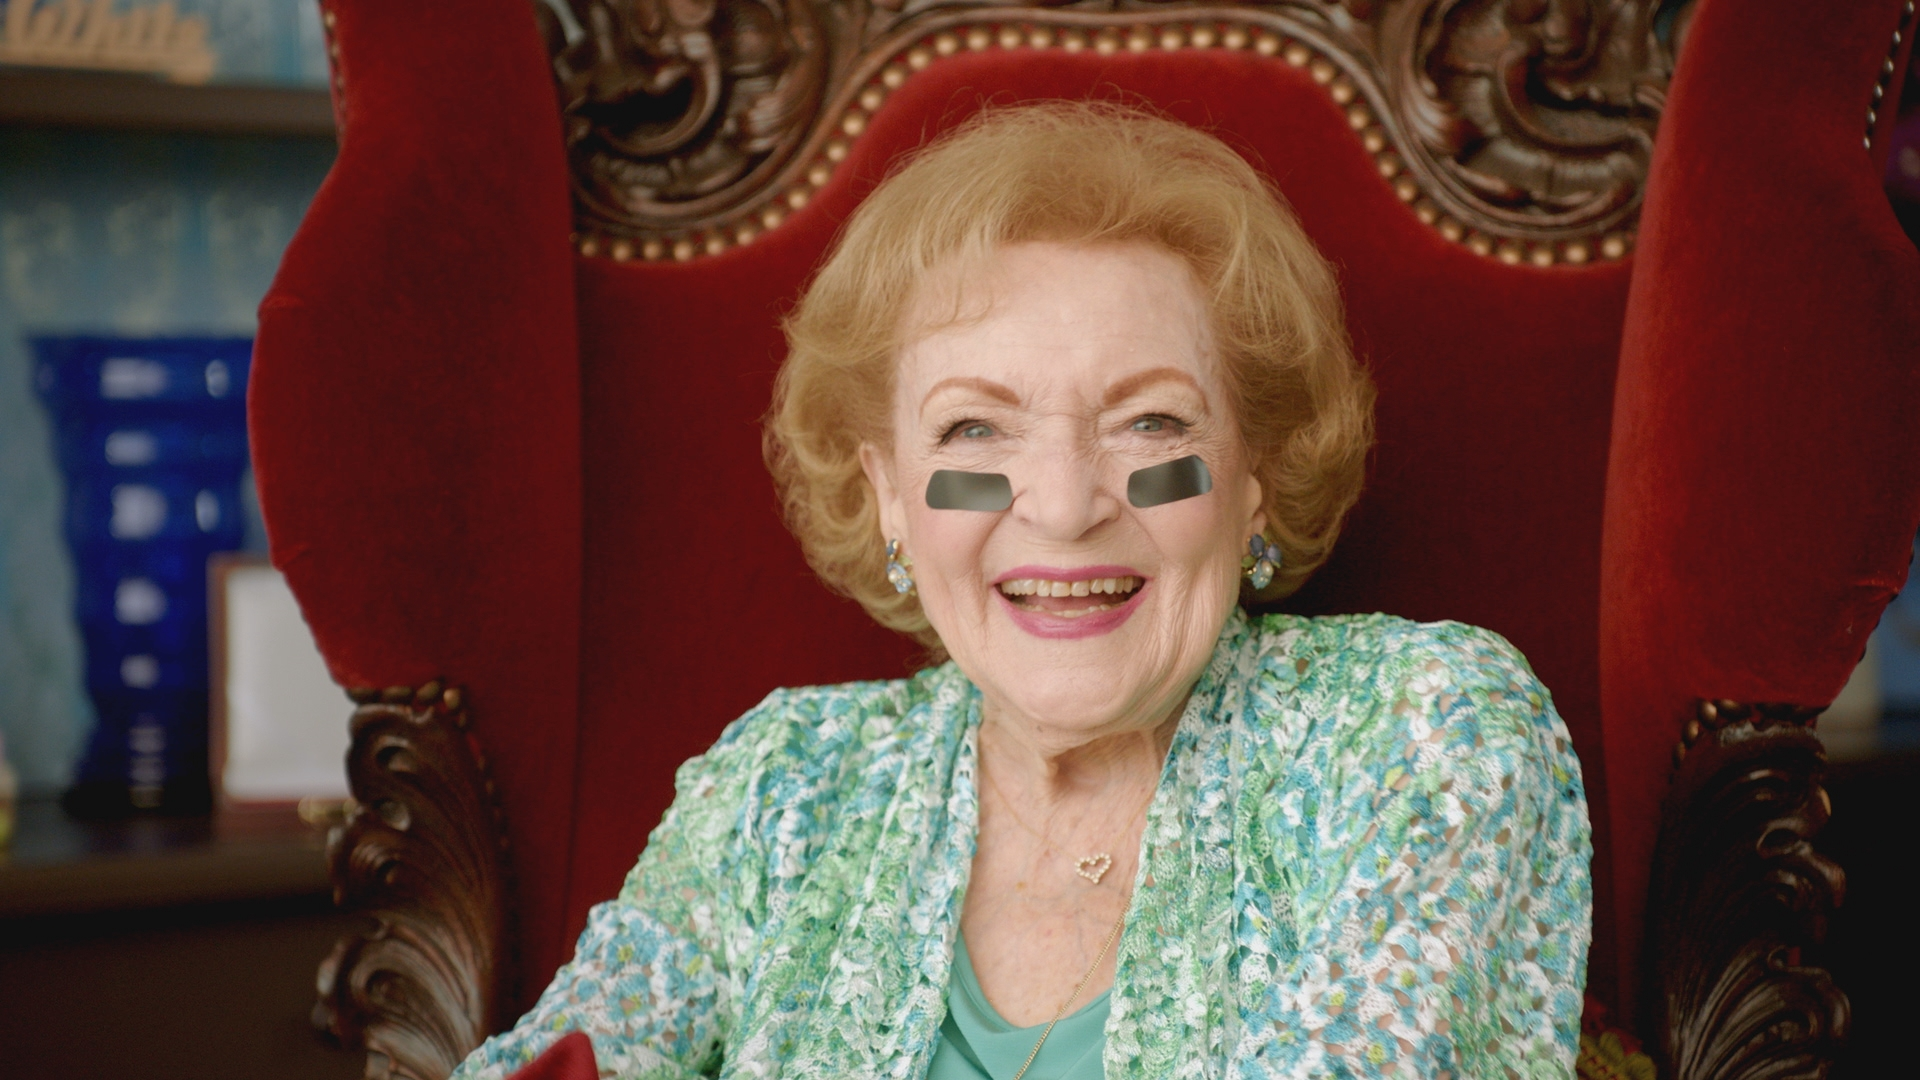 Betty White Leads NBC's Next Promotional Football Blitz